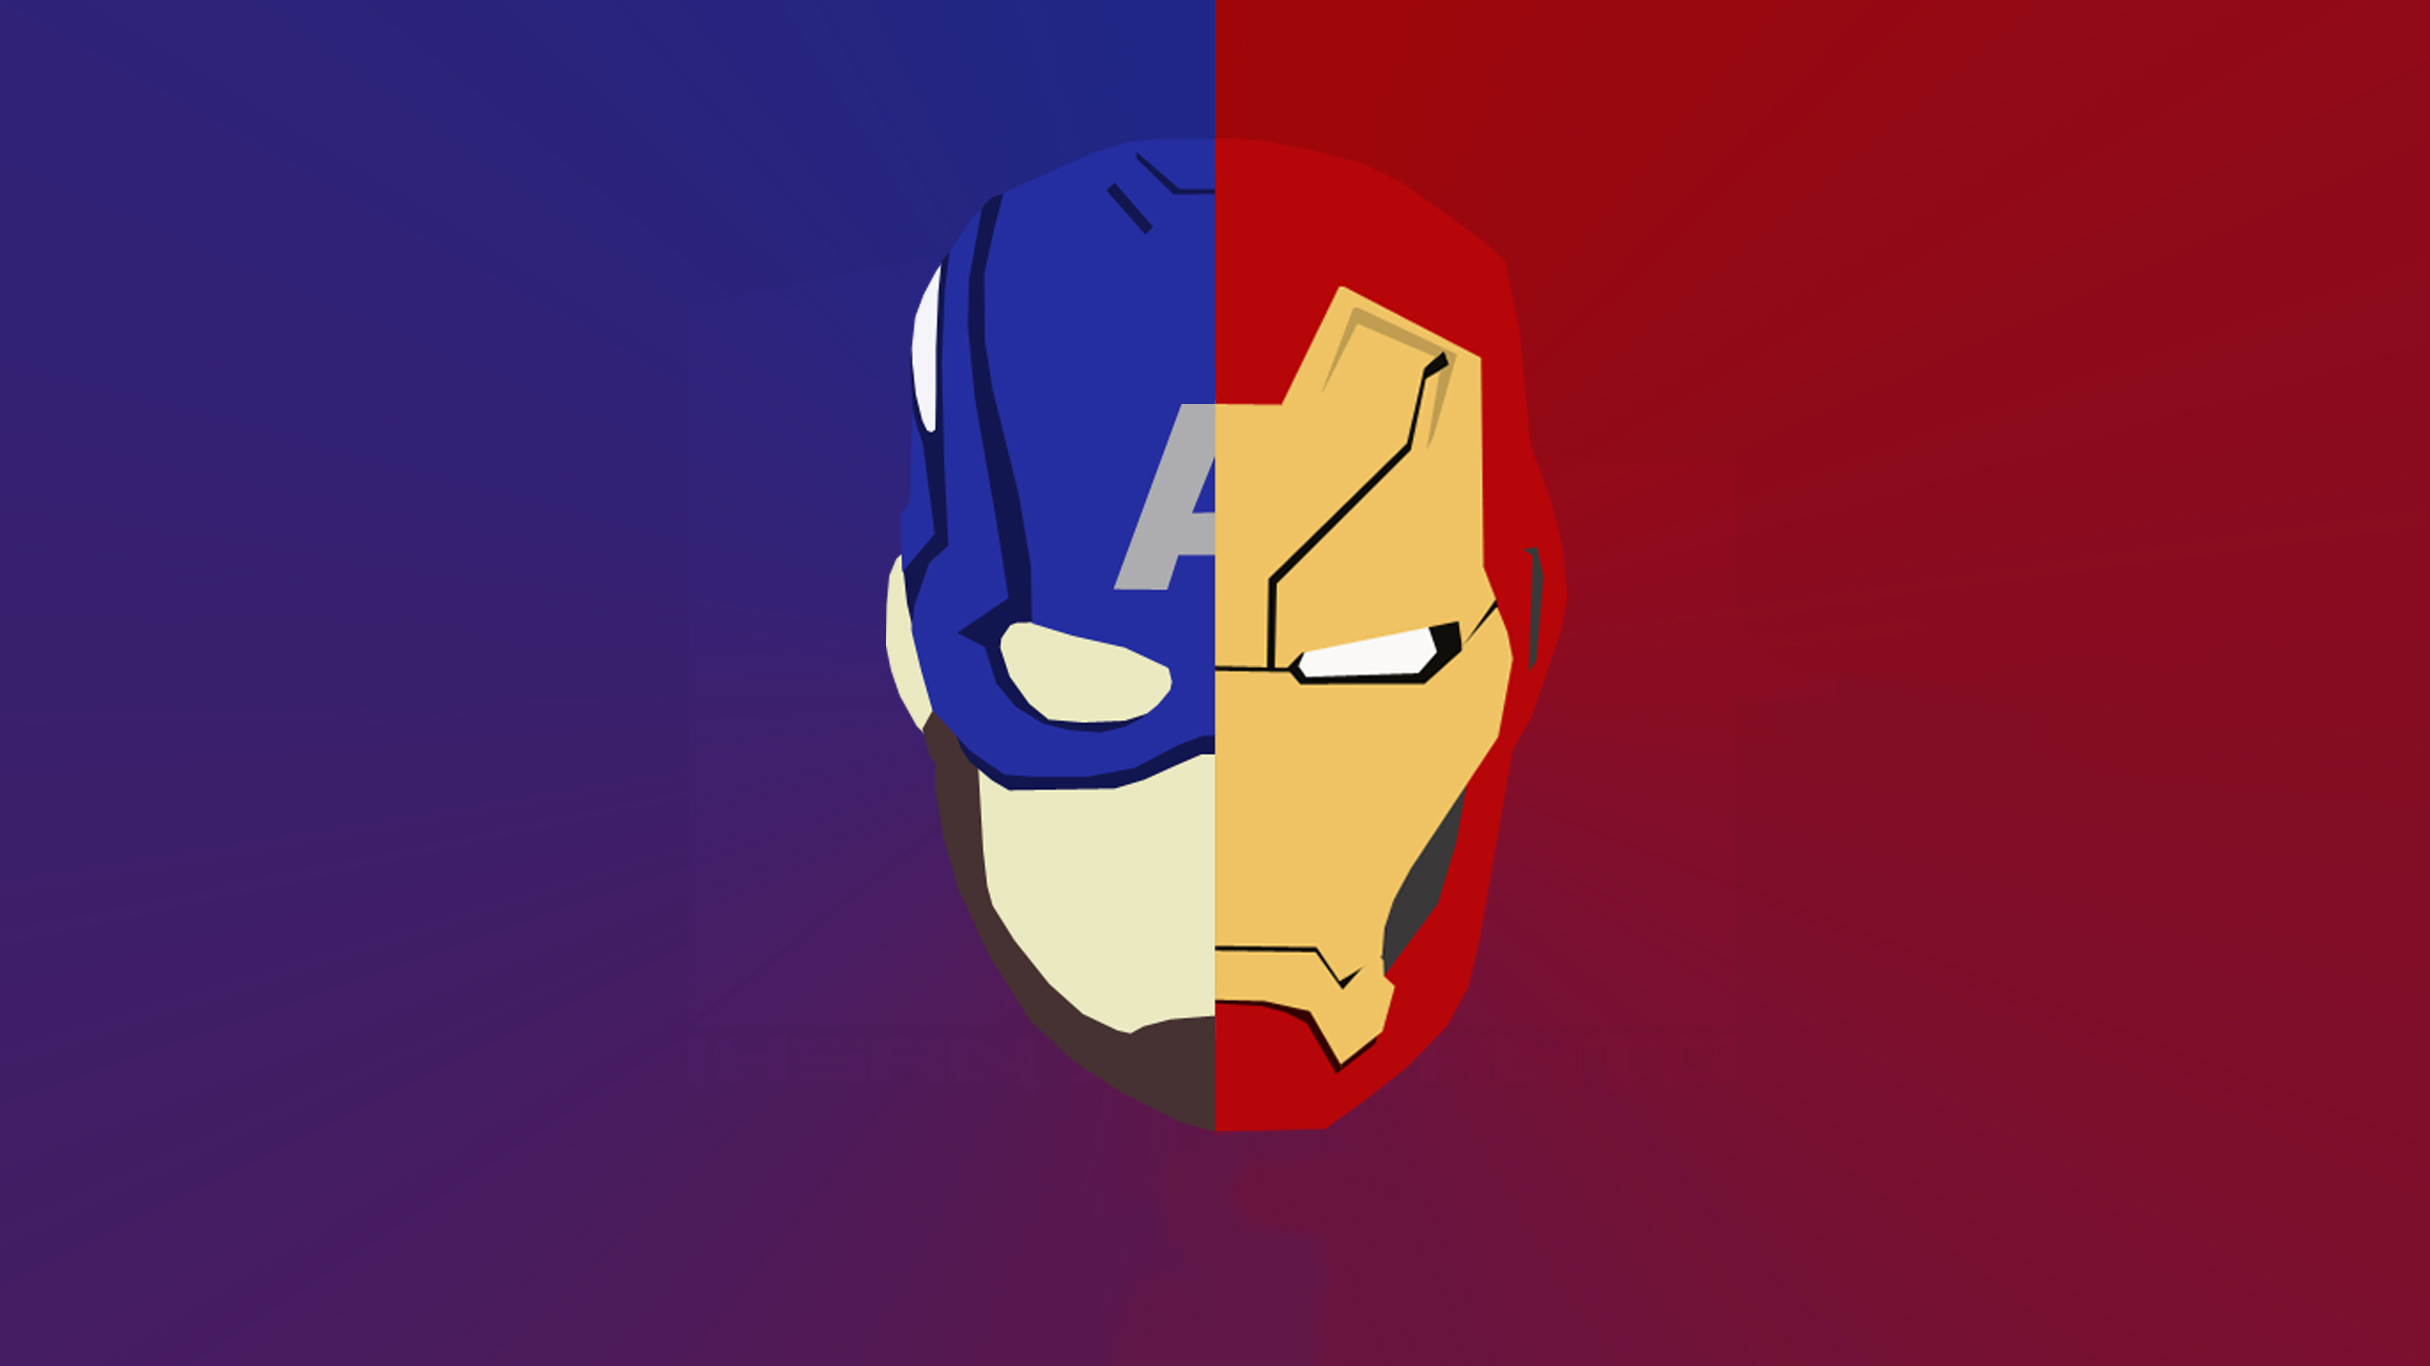 Iron Man And Captain America Artwork